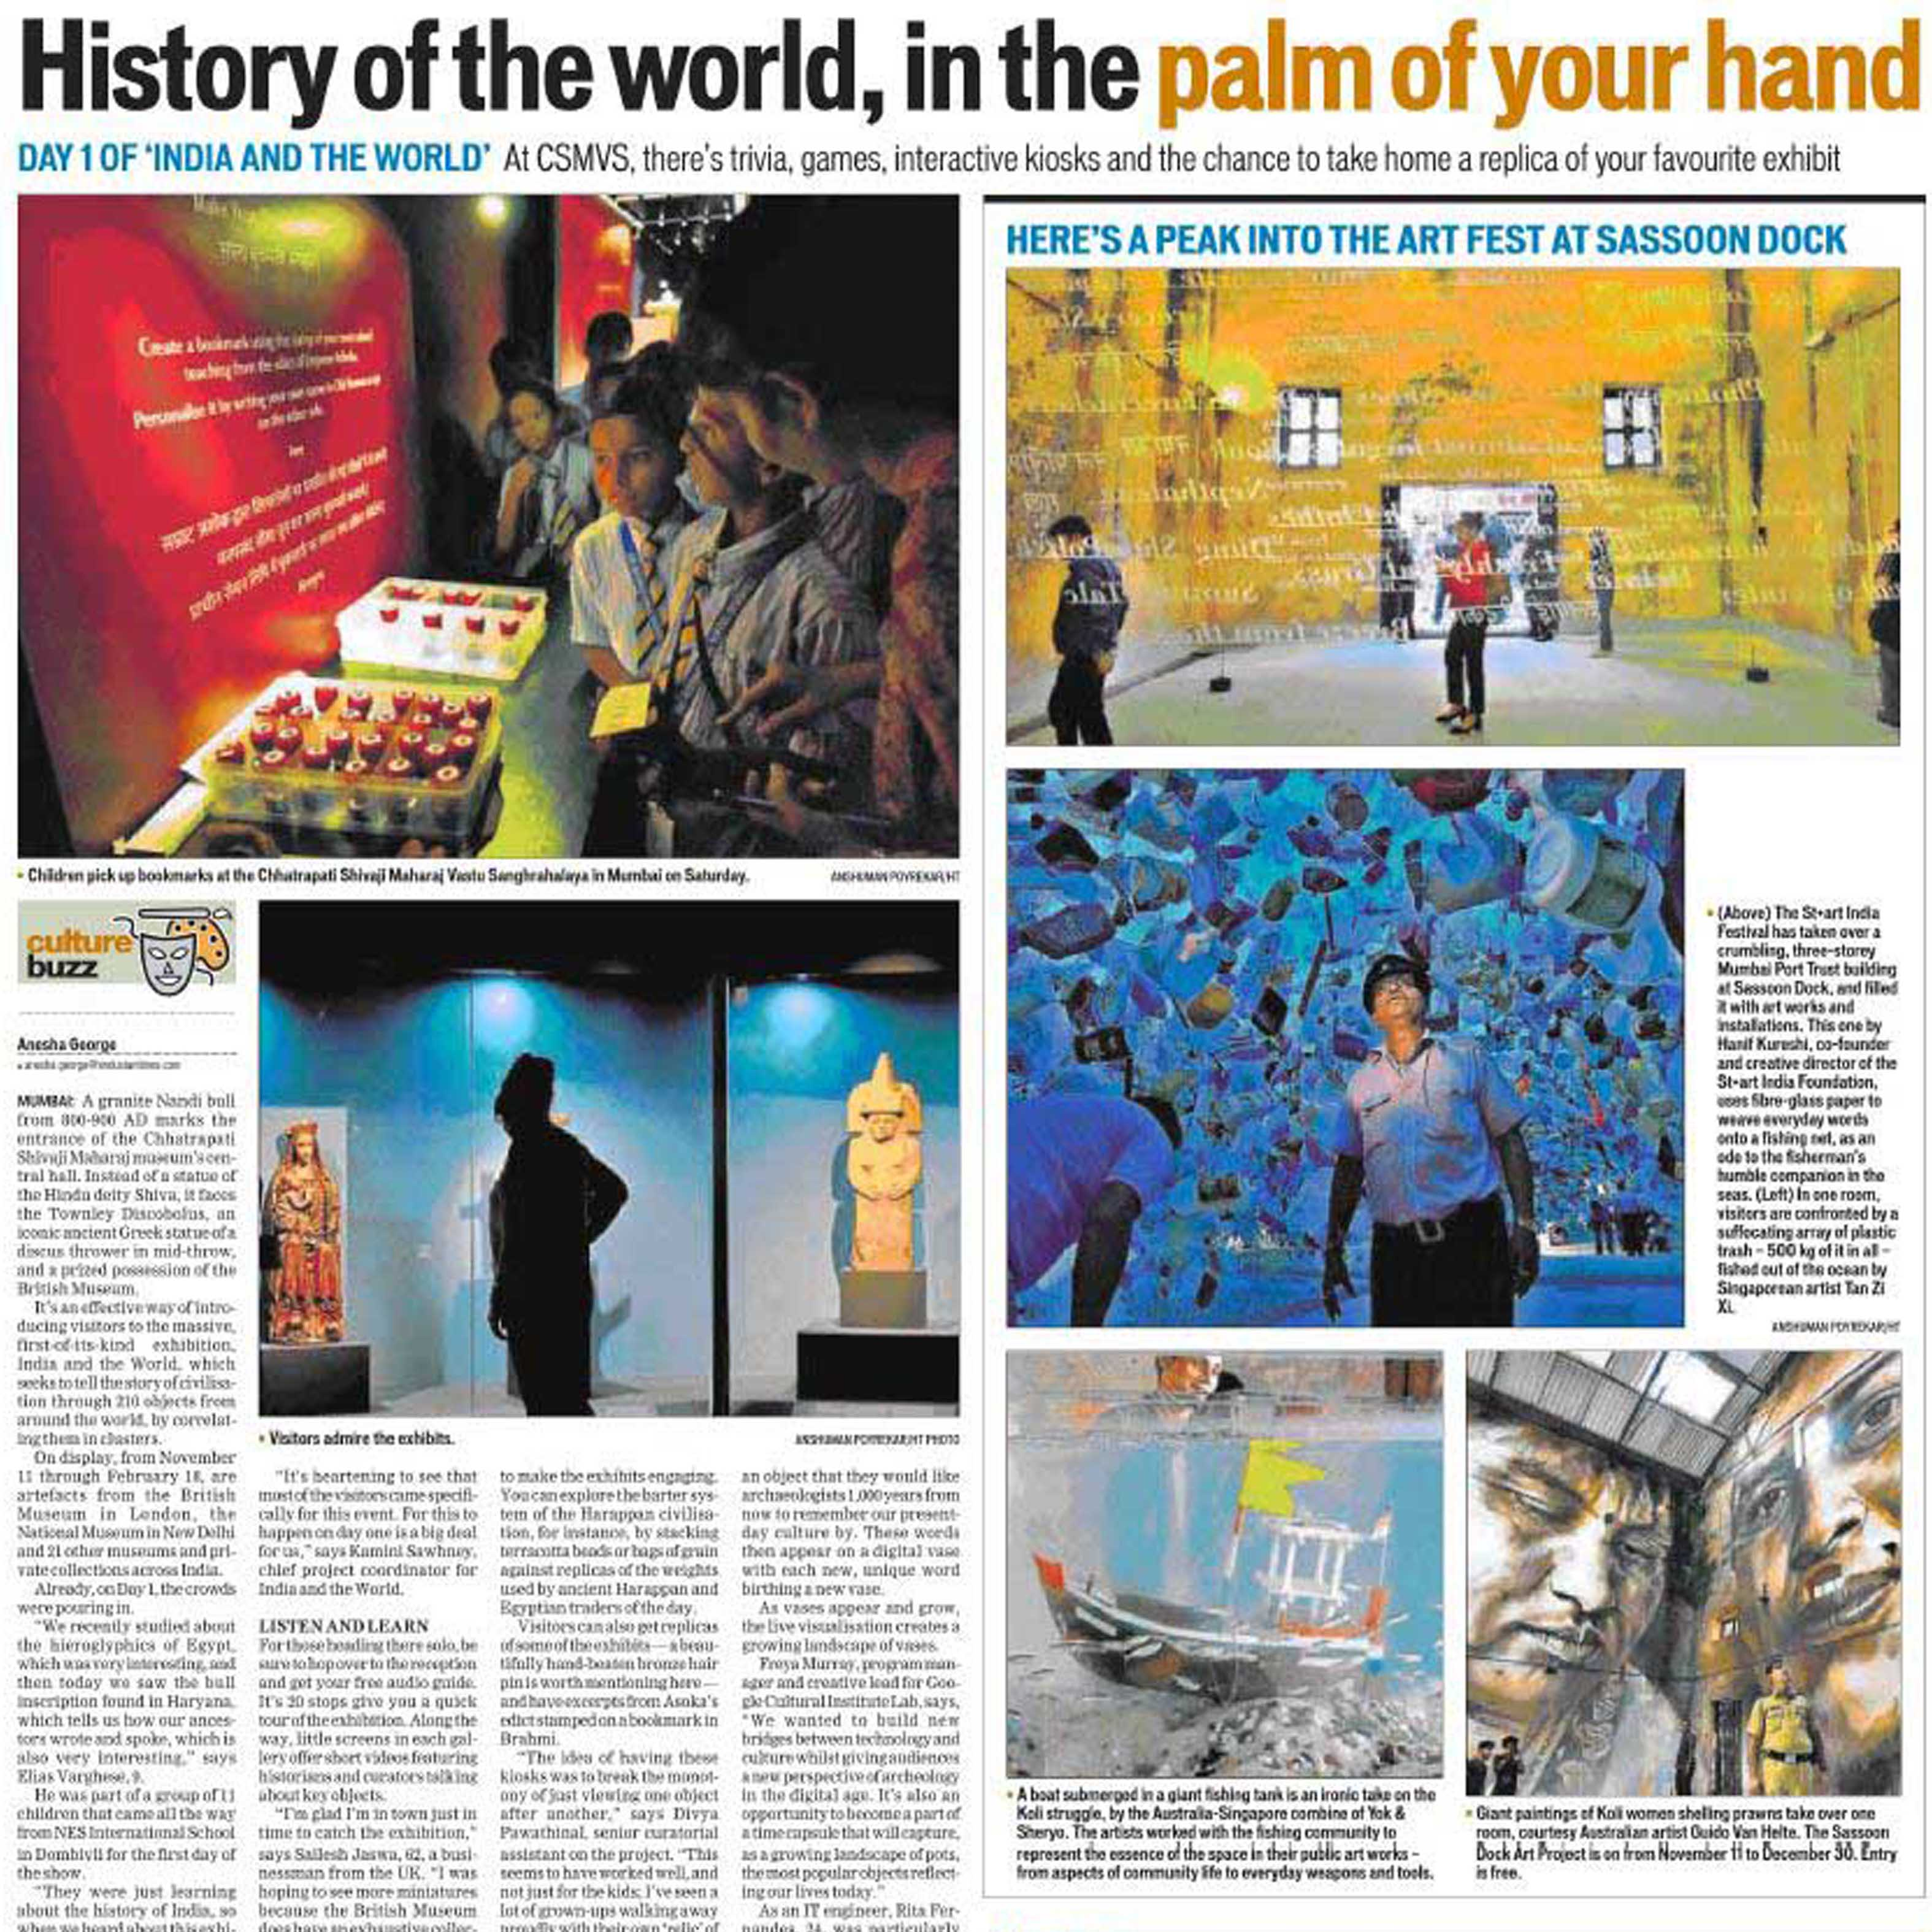 India & The World, Hindustan Times , History of the world palm of your hand, 11th November 2017